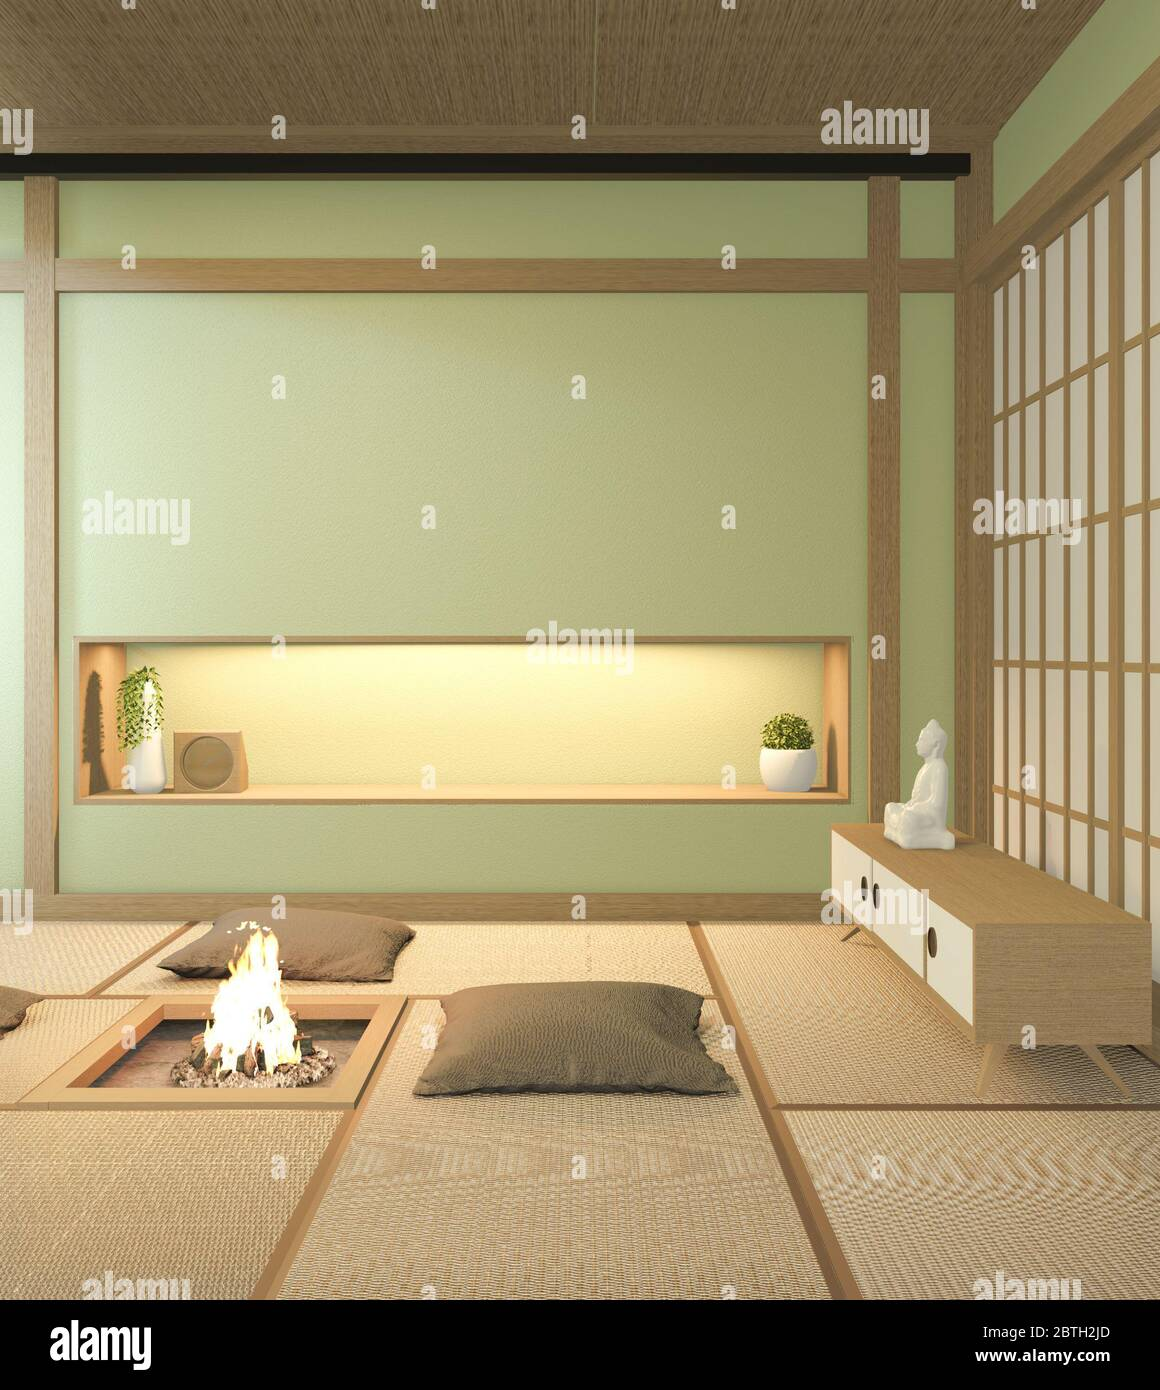 Nihon Green Room Design Interior With Door Paper And Cabinet Shelf Wall On Tatami Mat Floor Room Japanese Style 3d Rendering Stock Photo Alamy